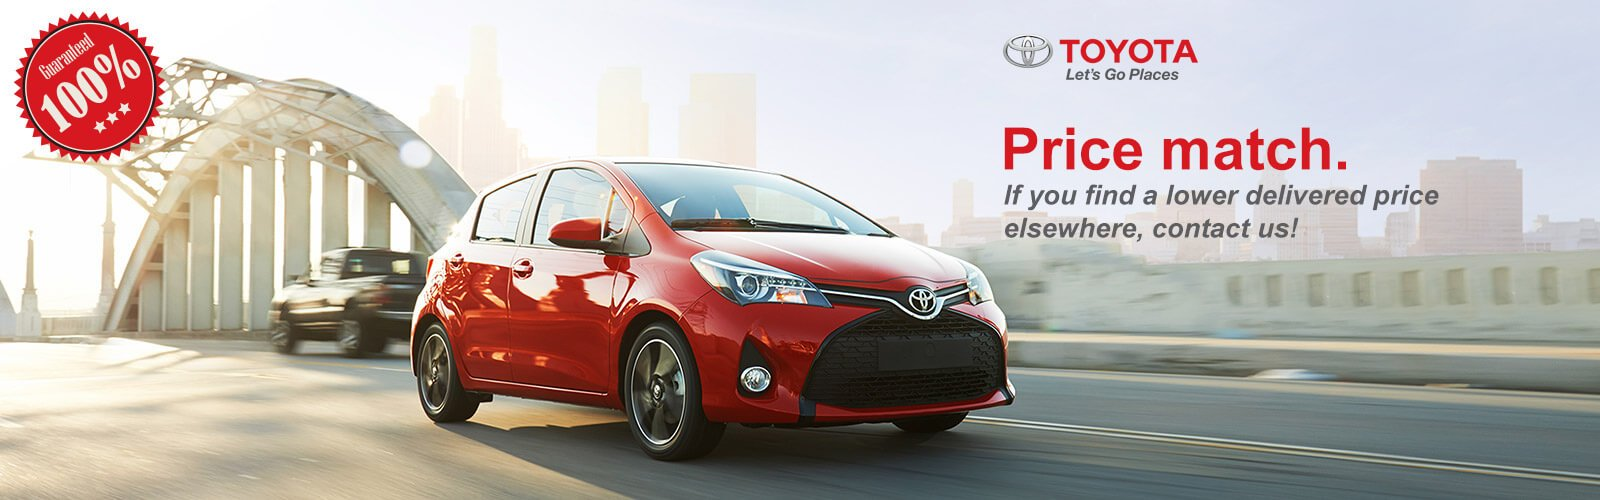 Toyota genuine parts price match